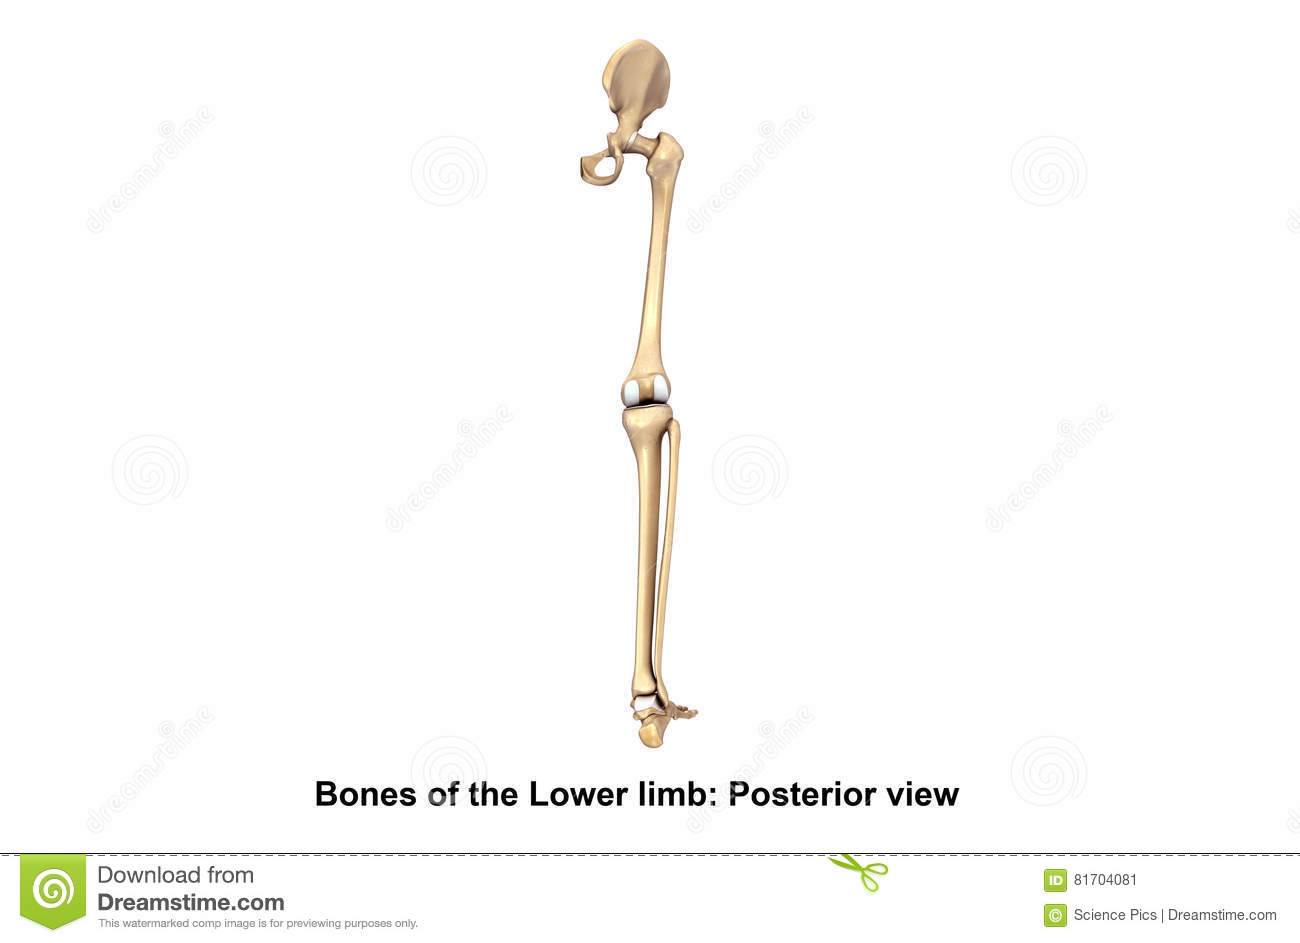 Bones of the Lower limb Posterior view